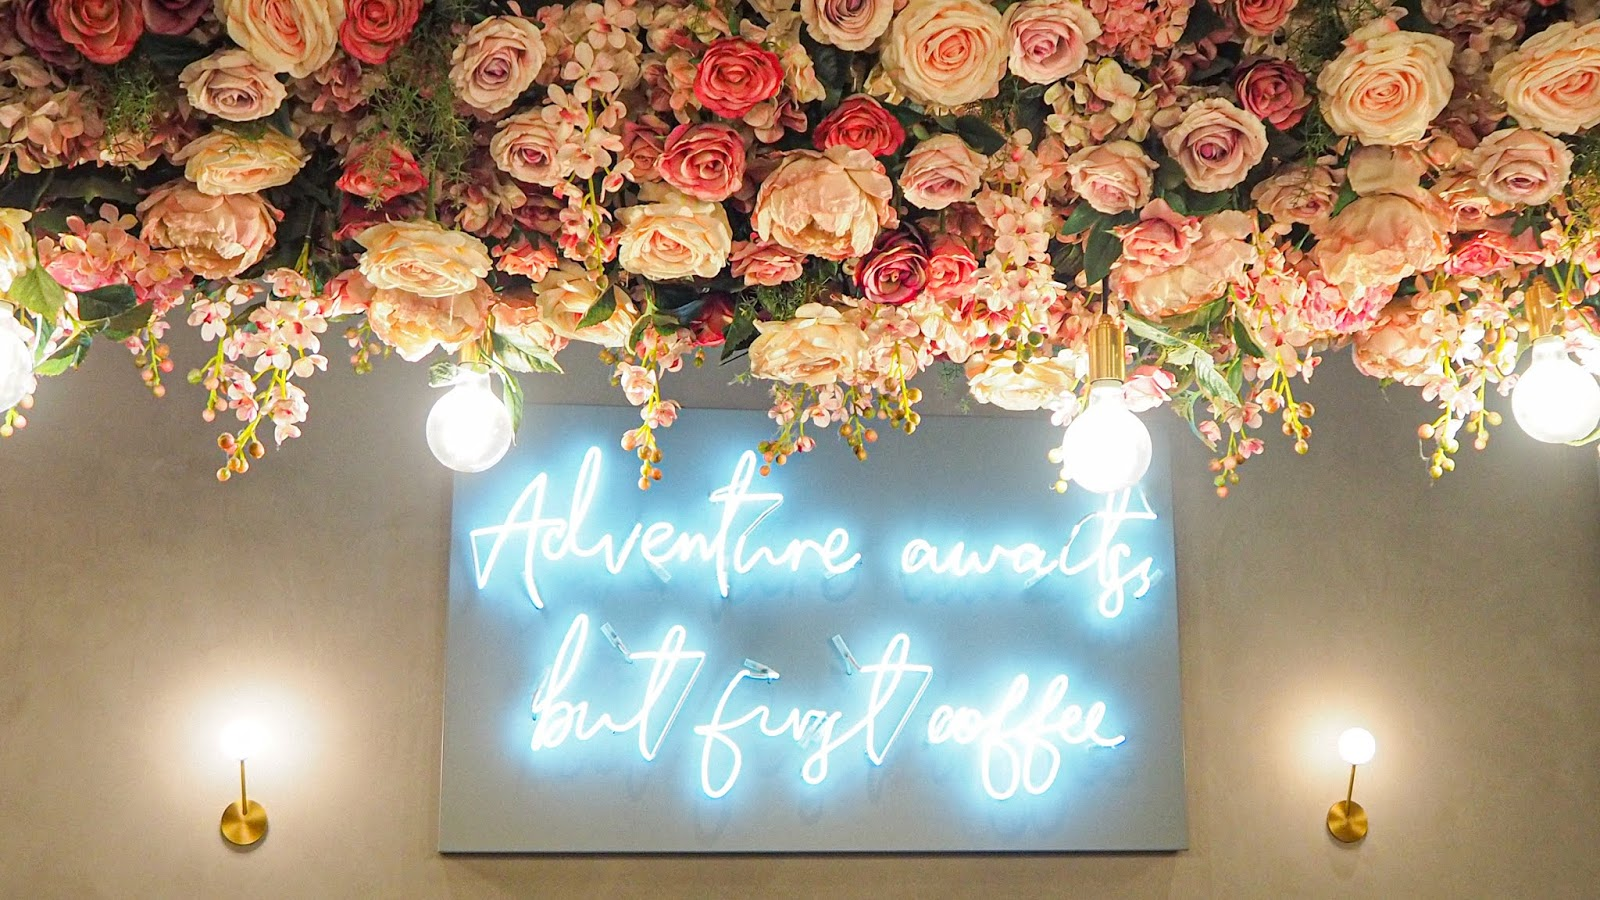 Neon Sign that says Adventure Awaits, But First Coffee with flowers overhead